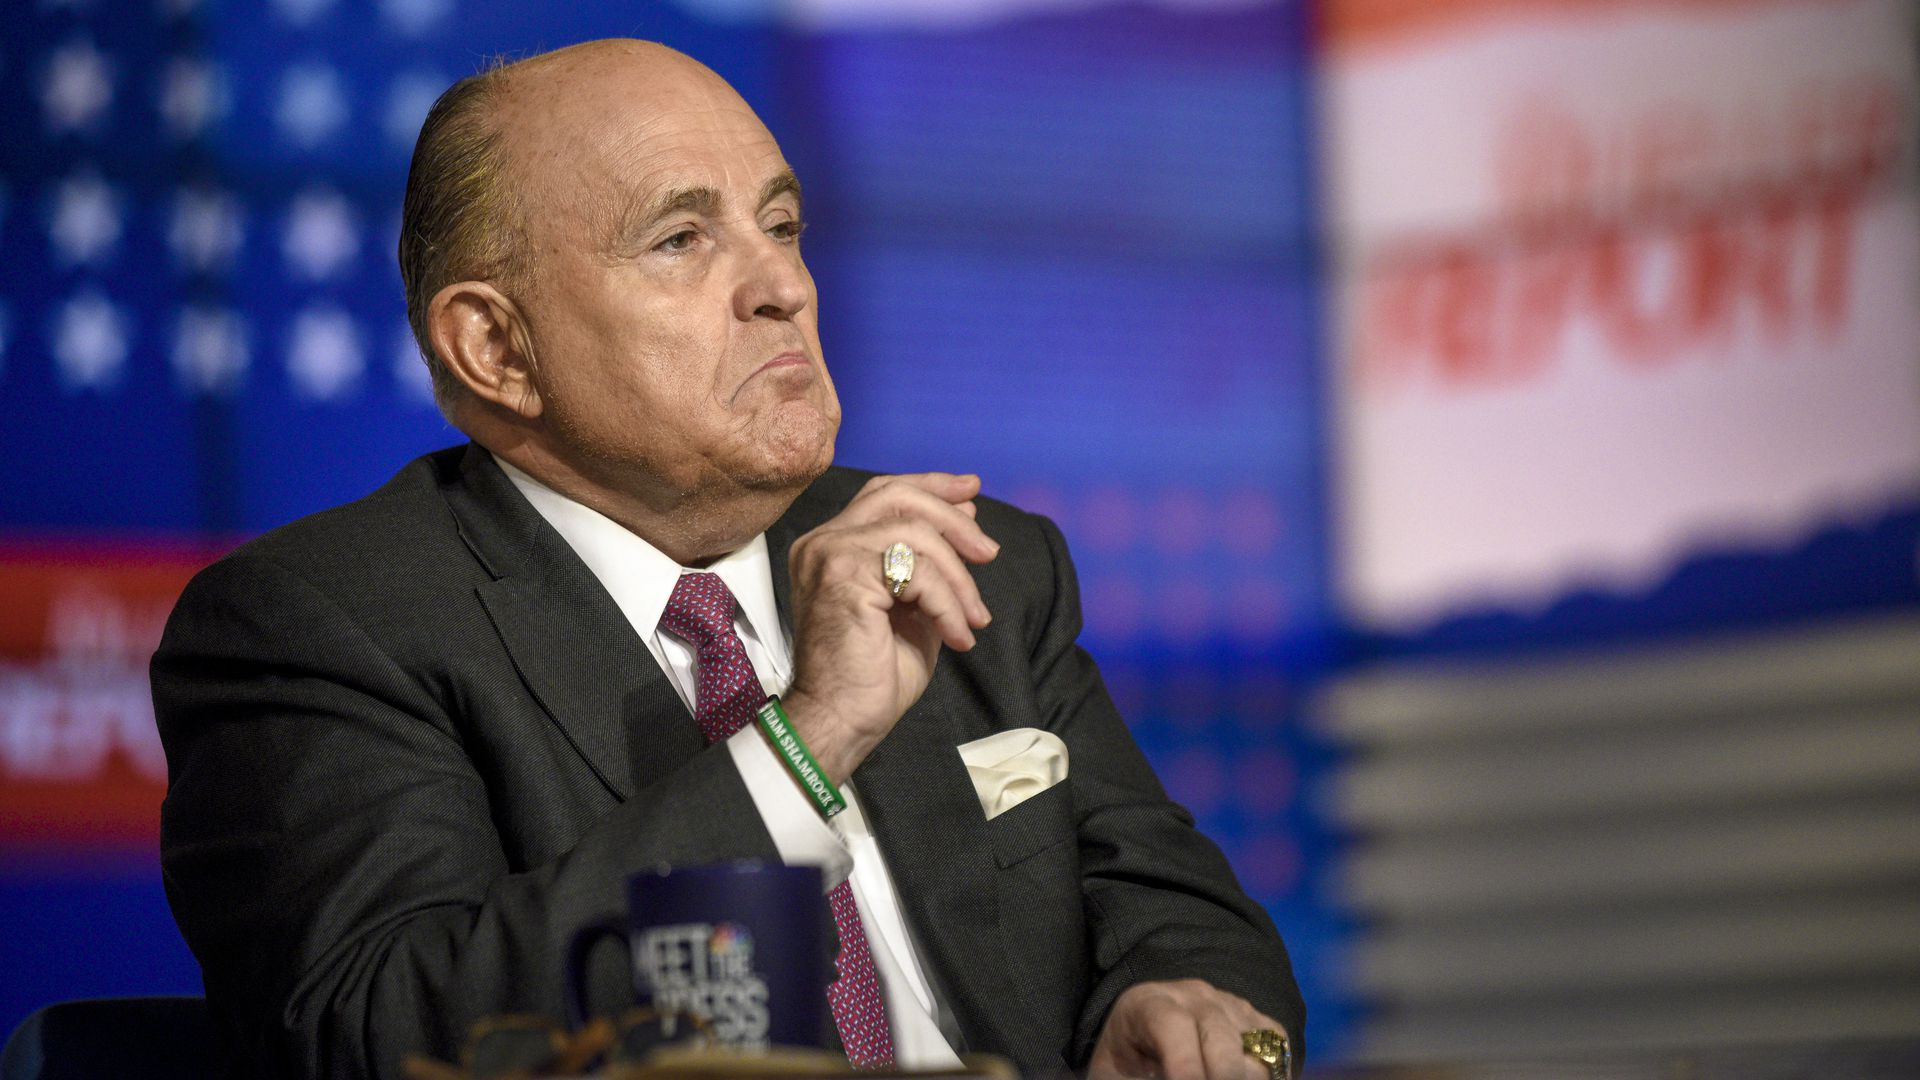 WSJ: Prosecutors examining wide array of possible charges in Giuliani investigation